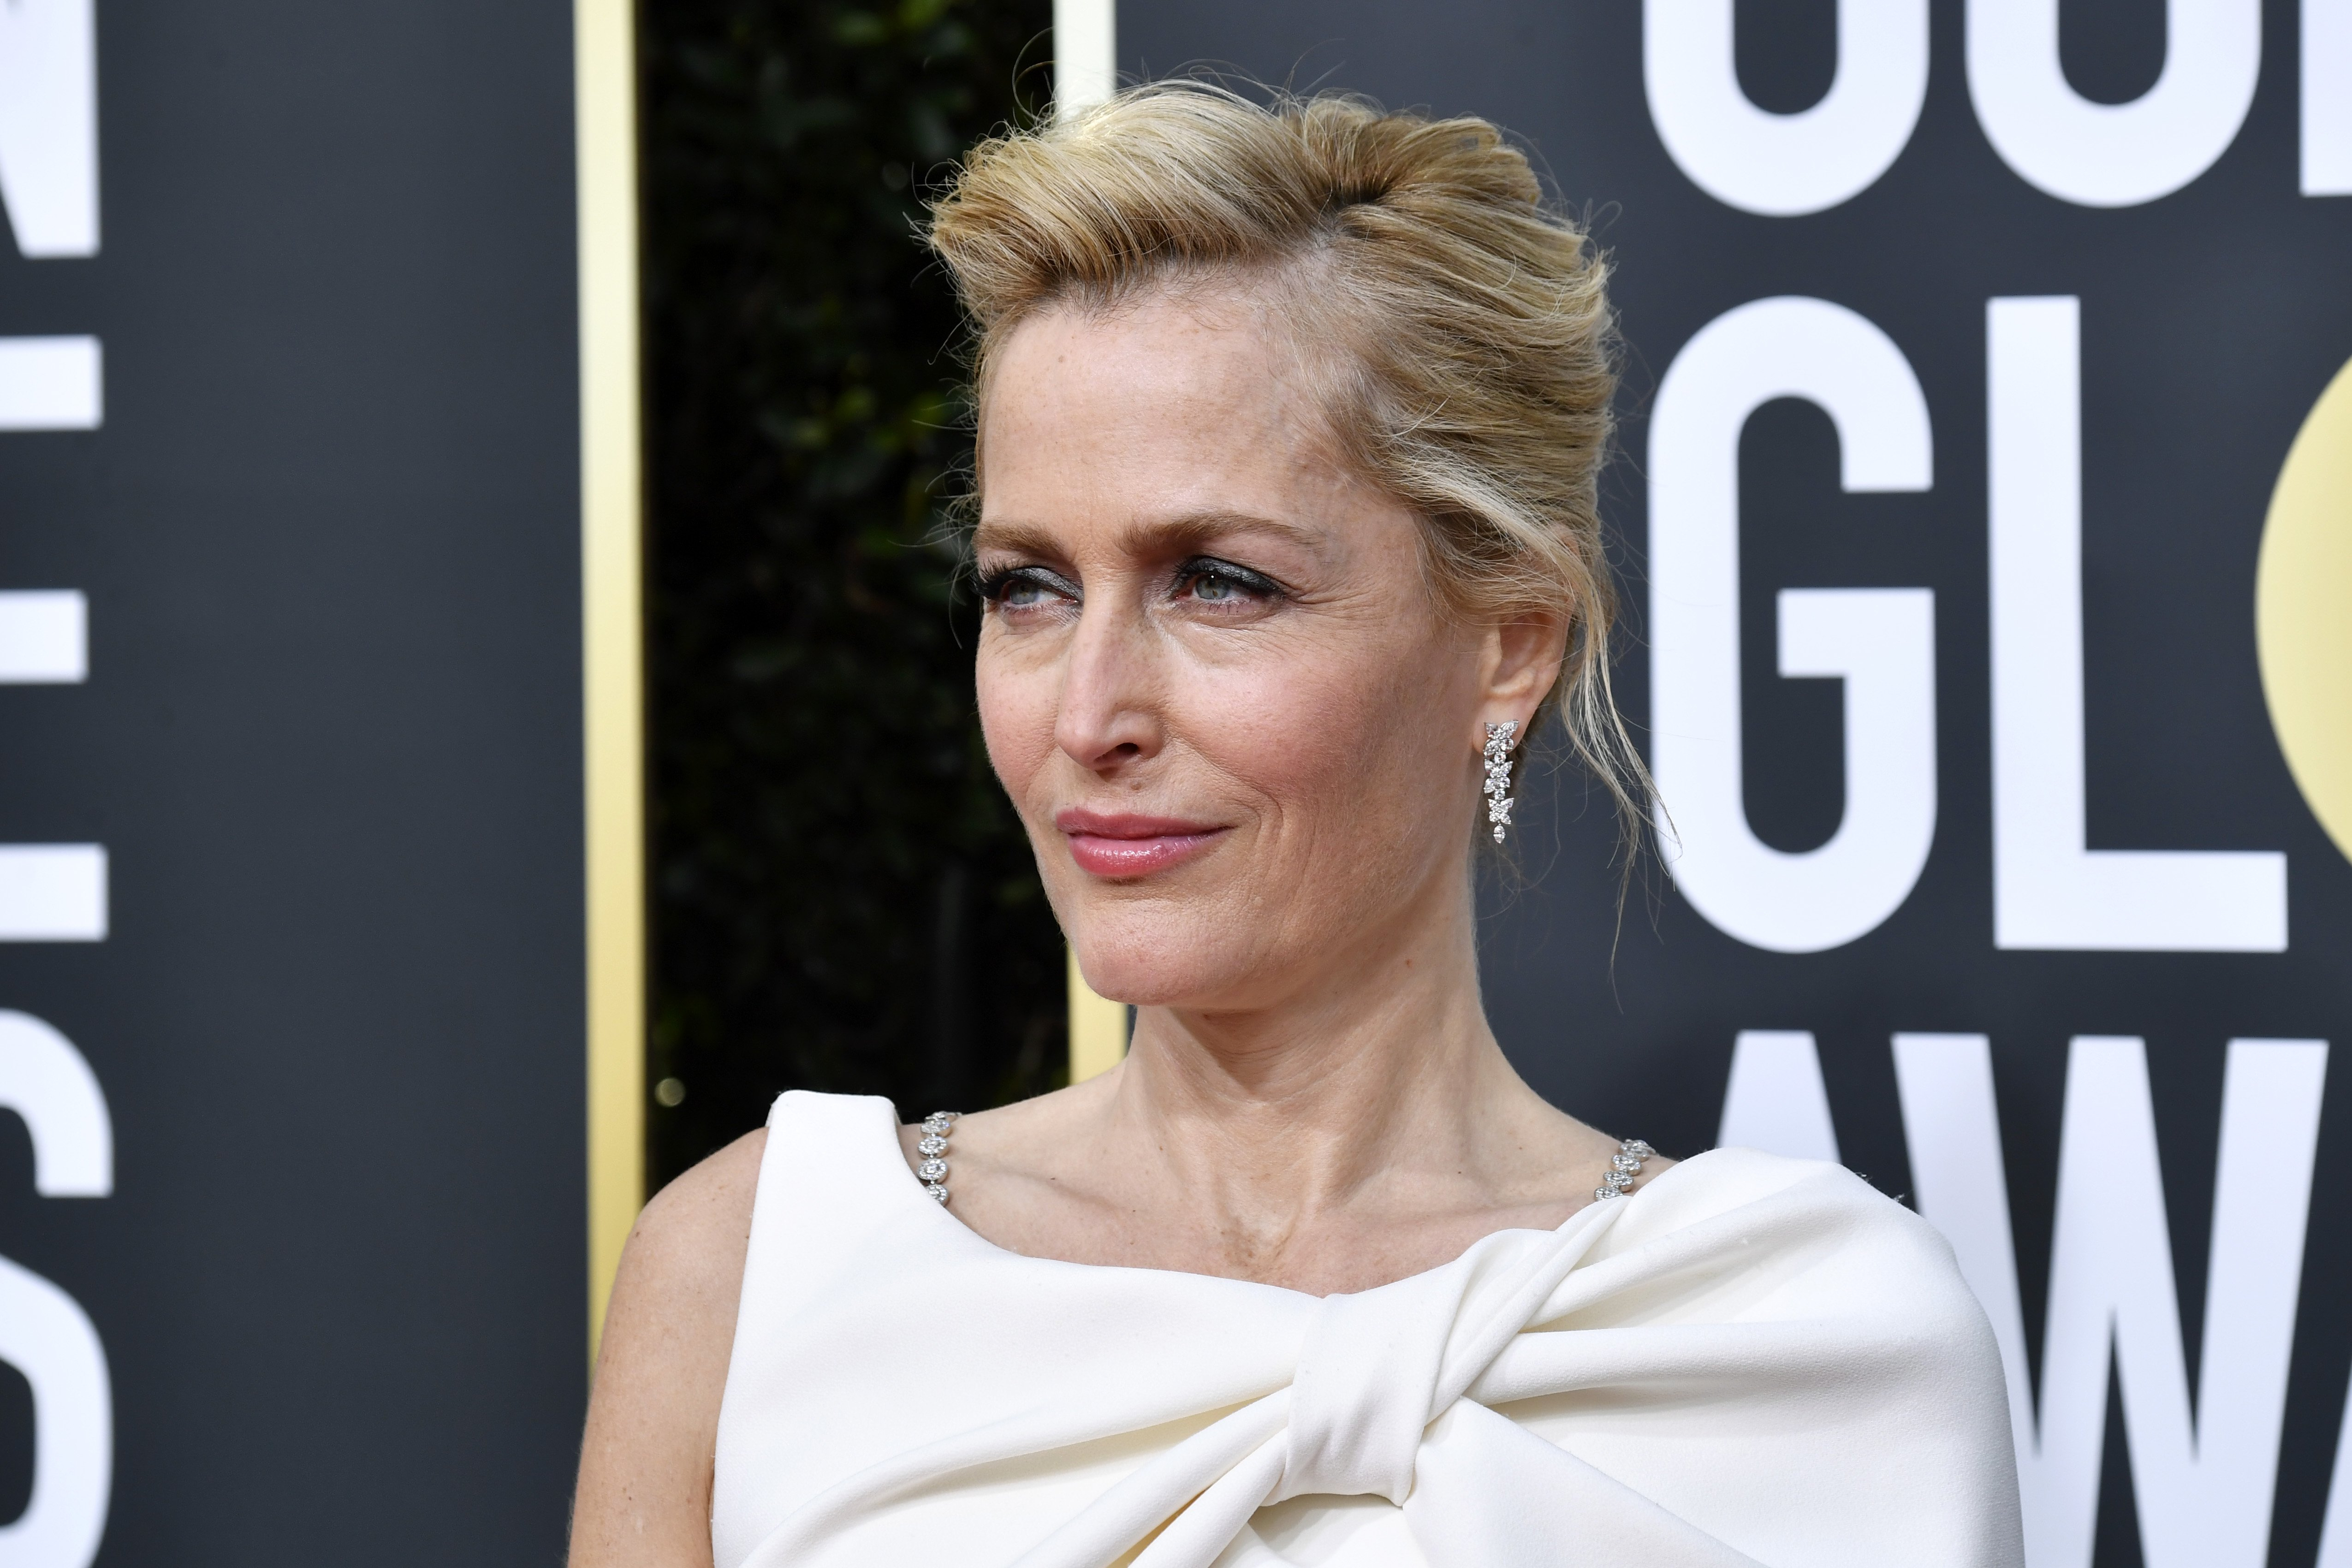 Gillian Anderson attends the 77th Annual Golden Globe Awards at The Beverly Hilton Hotel on January 05, 2020 in Beverly Hills, California | Photo: Getty Images